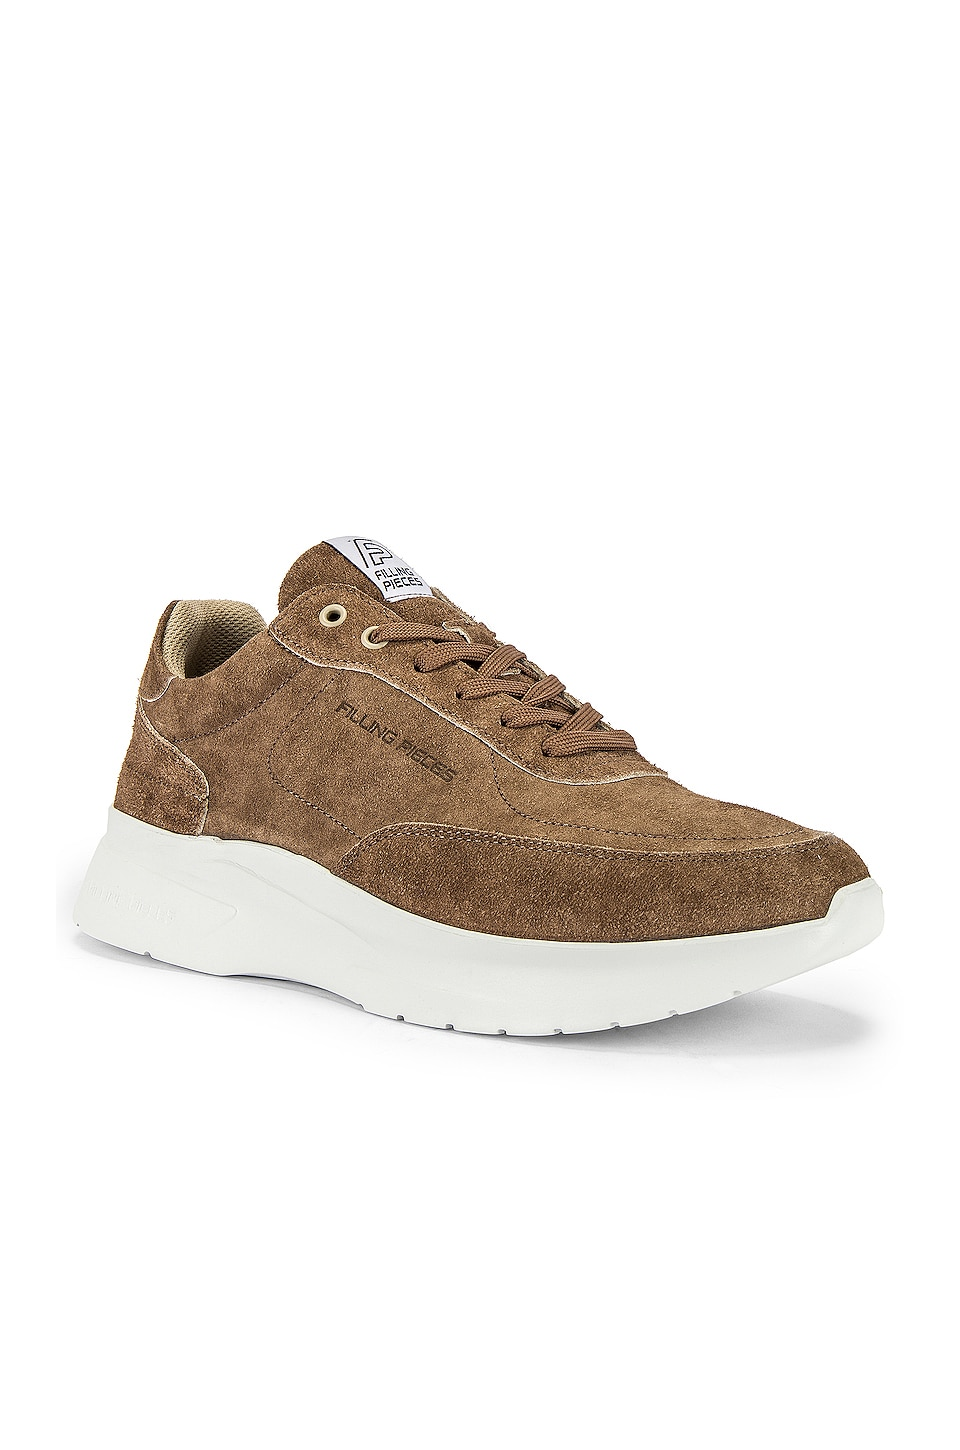 Filling Pieces Runner Sneaker in Taupe